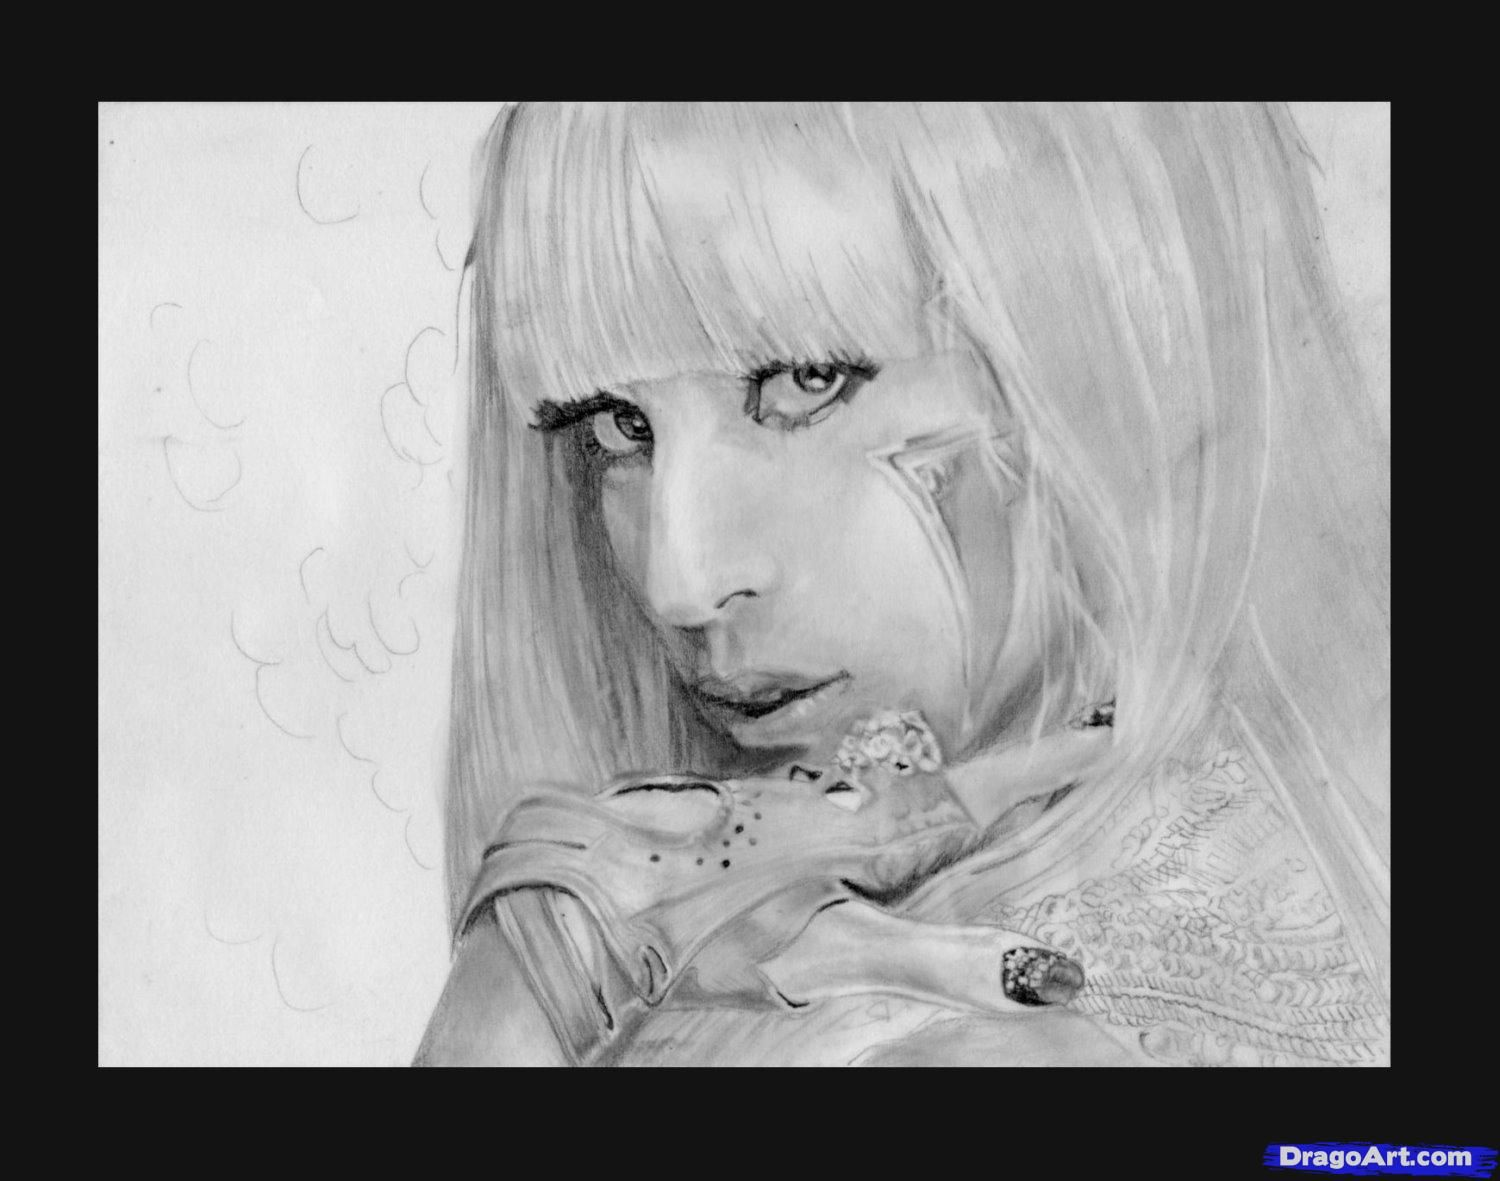 How to draw a portrait Lady Gaga with a pencil step by step